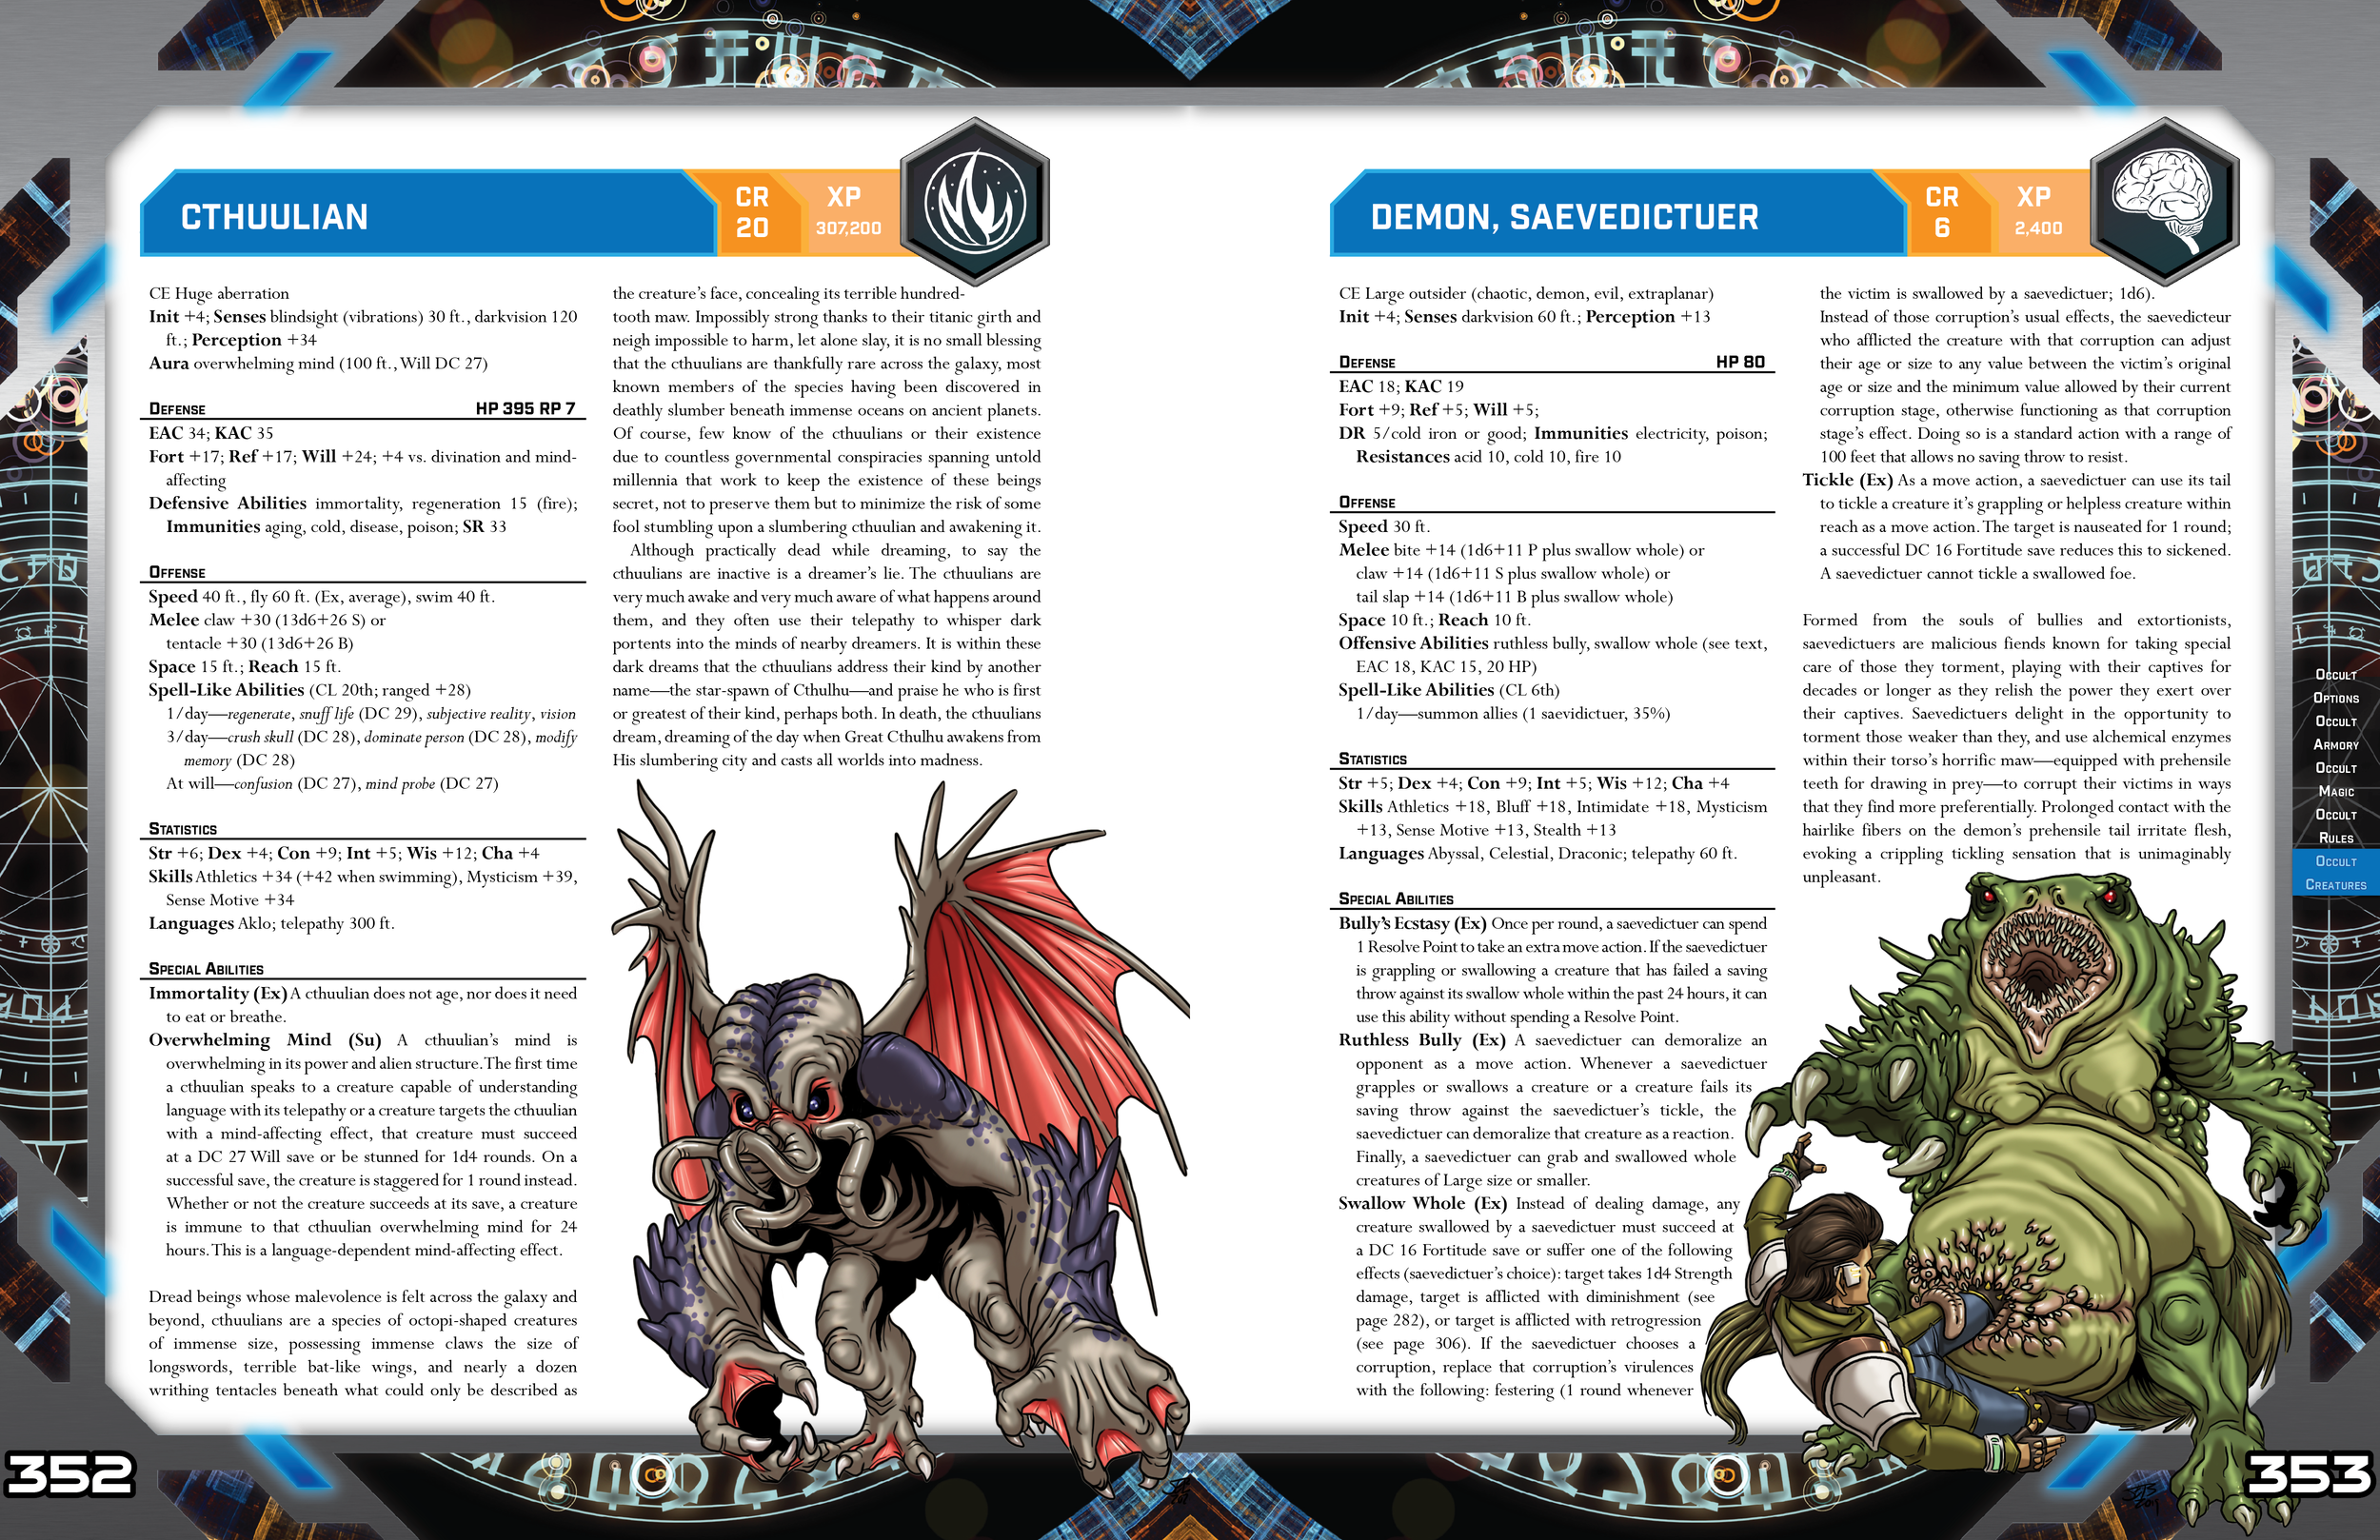 Descriptions for two new aliens, Cthulians and Savedictor Demons, are shown.